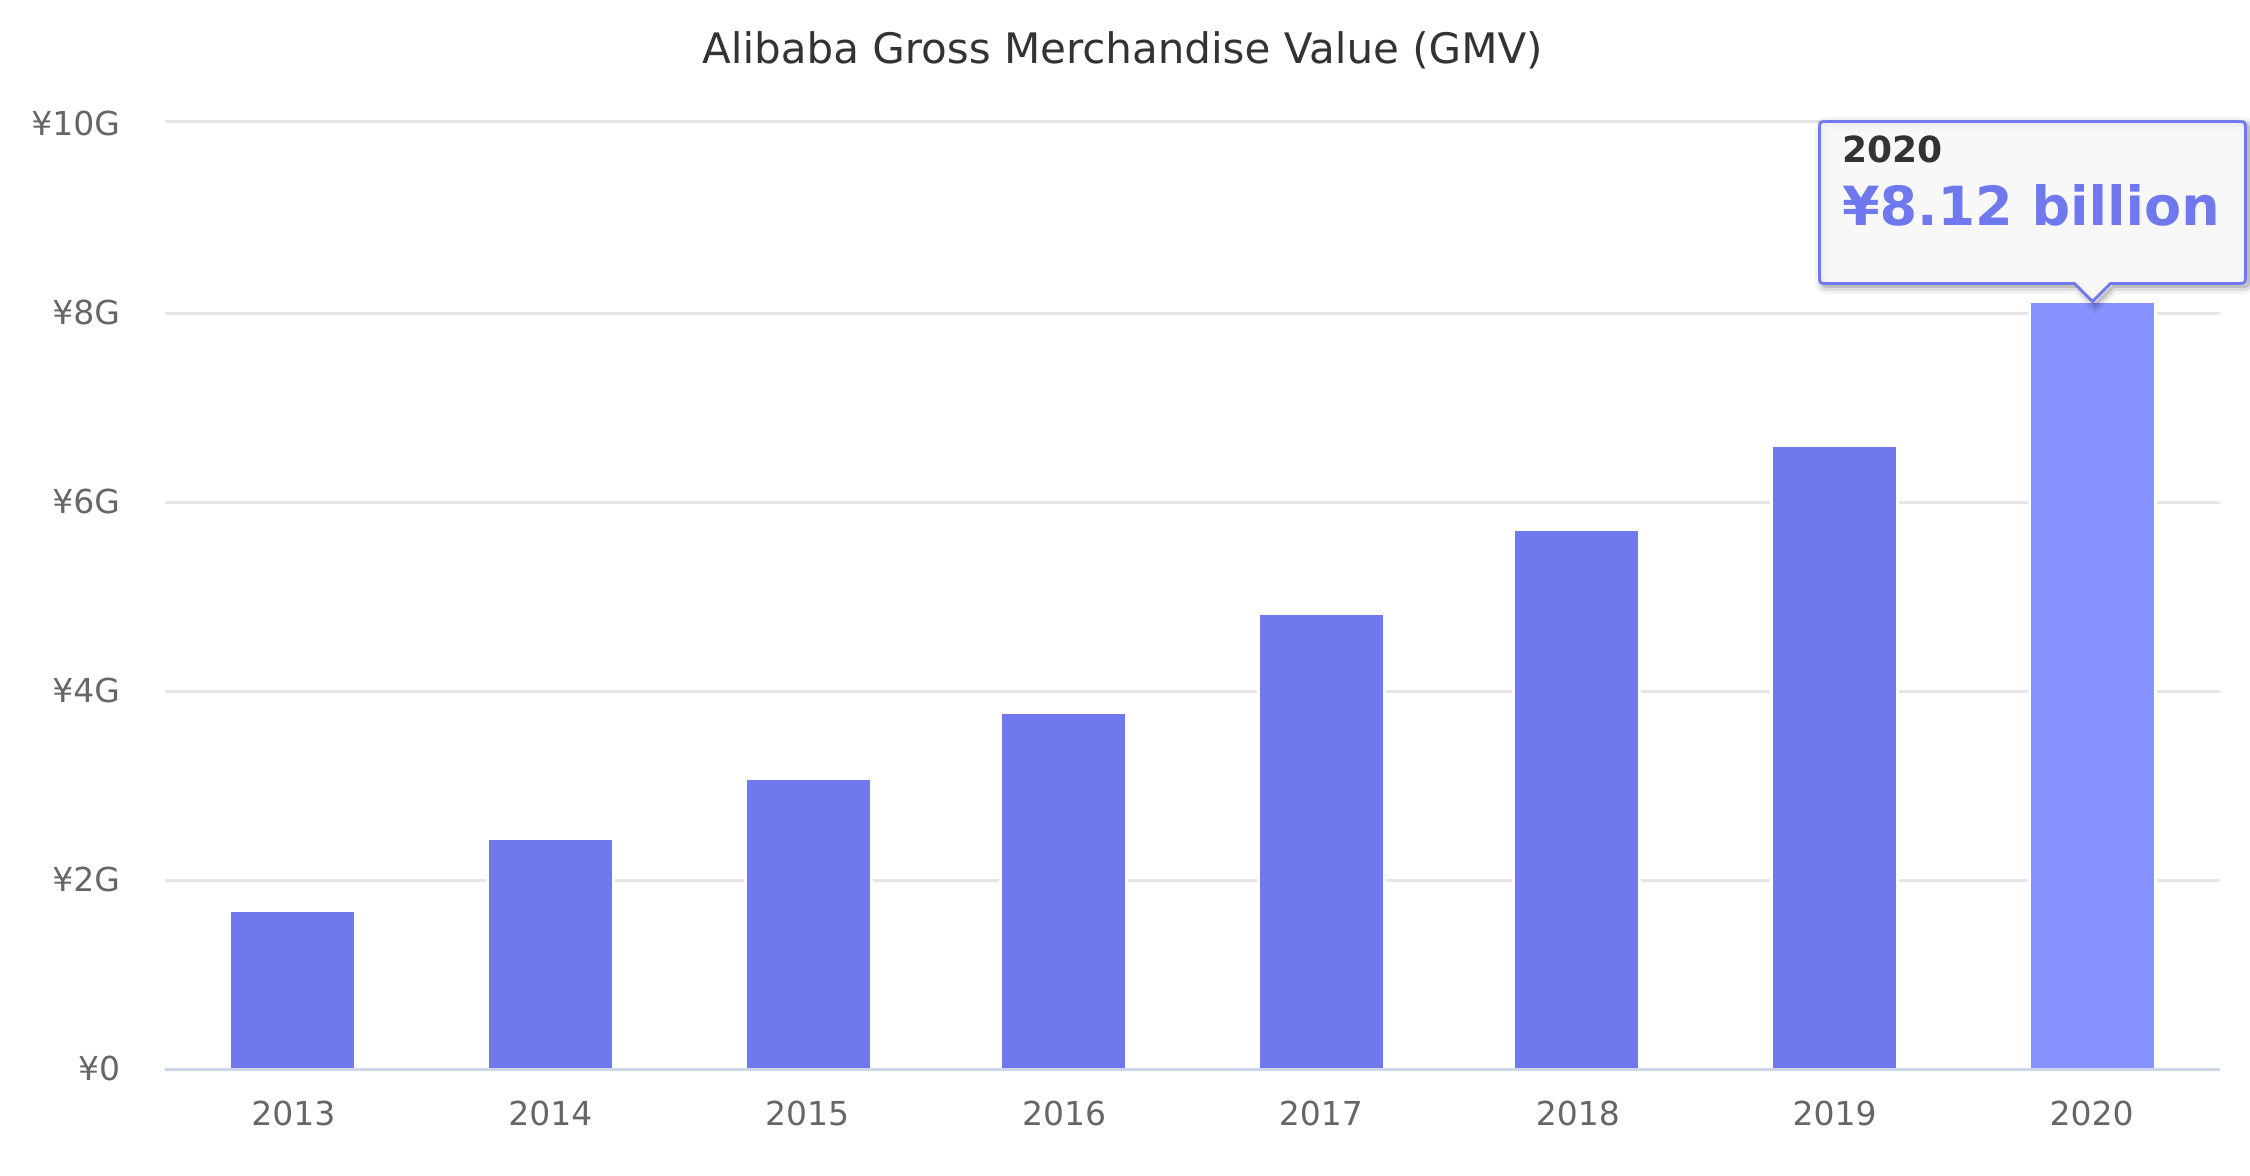 Alibaba Gross Merchandise Value (GMV) 2013-2019